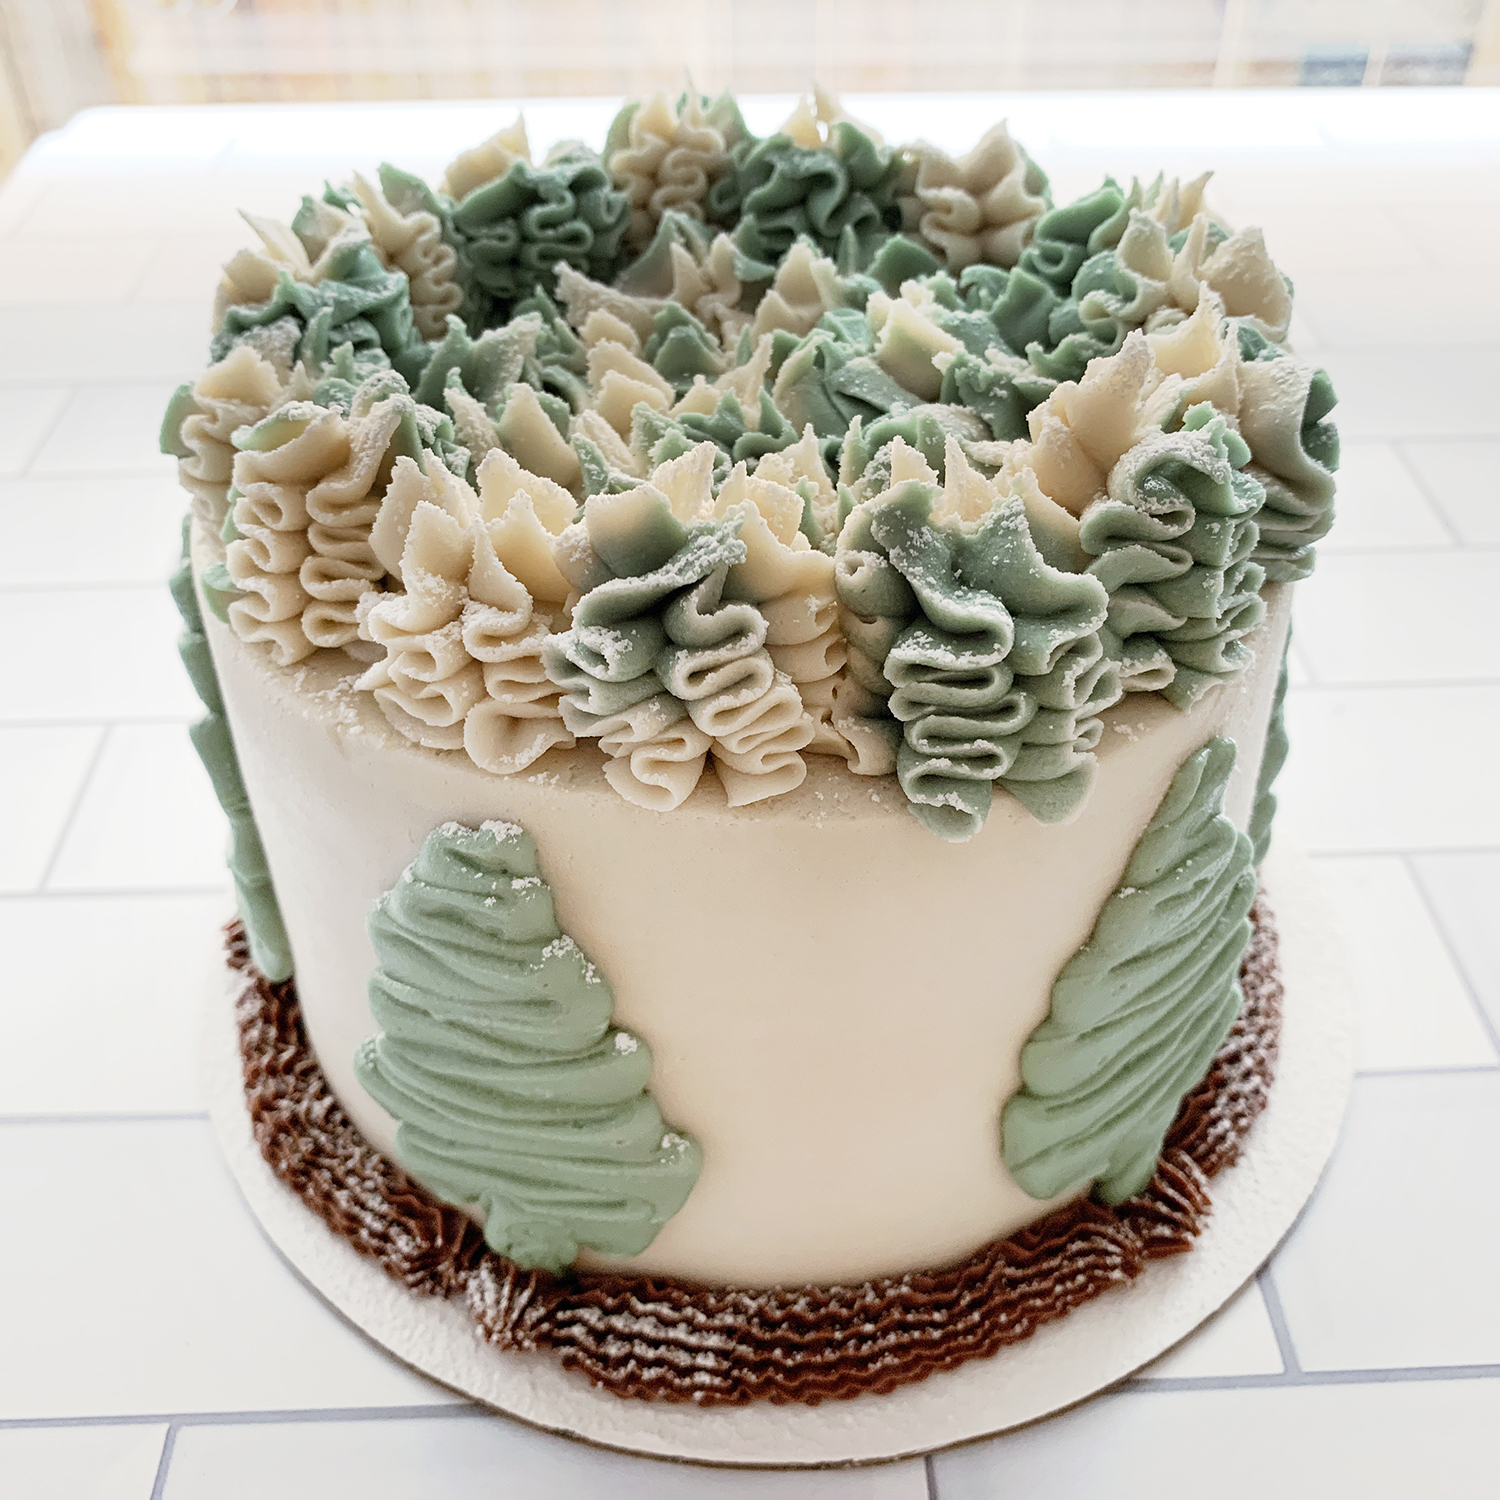 Winter Wonderland Cake by The Allergy Chef